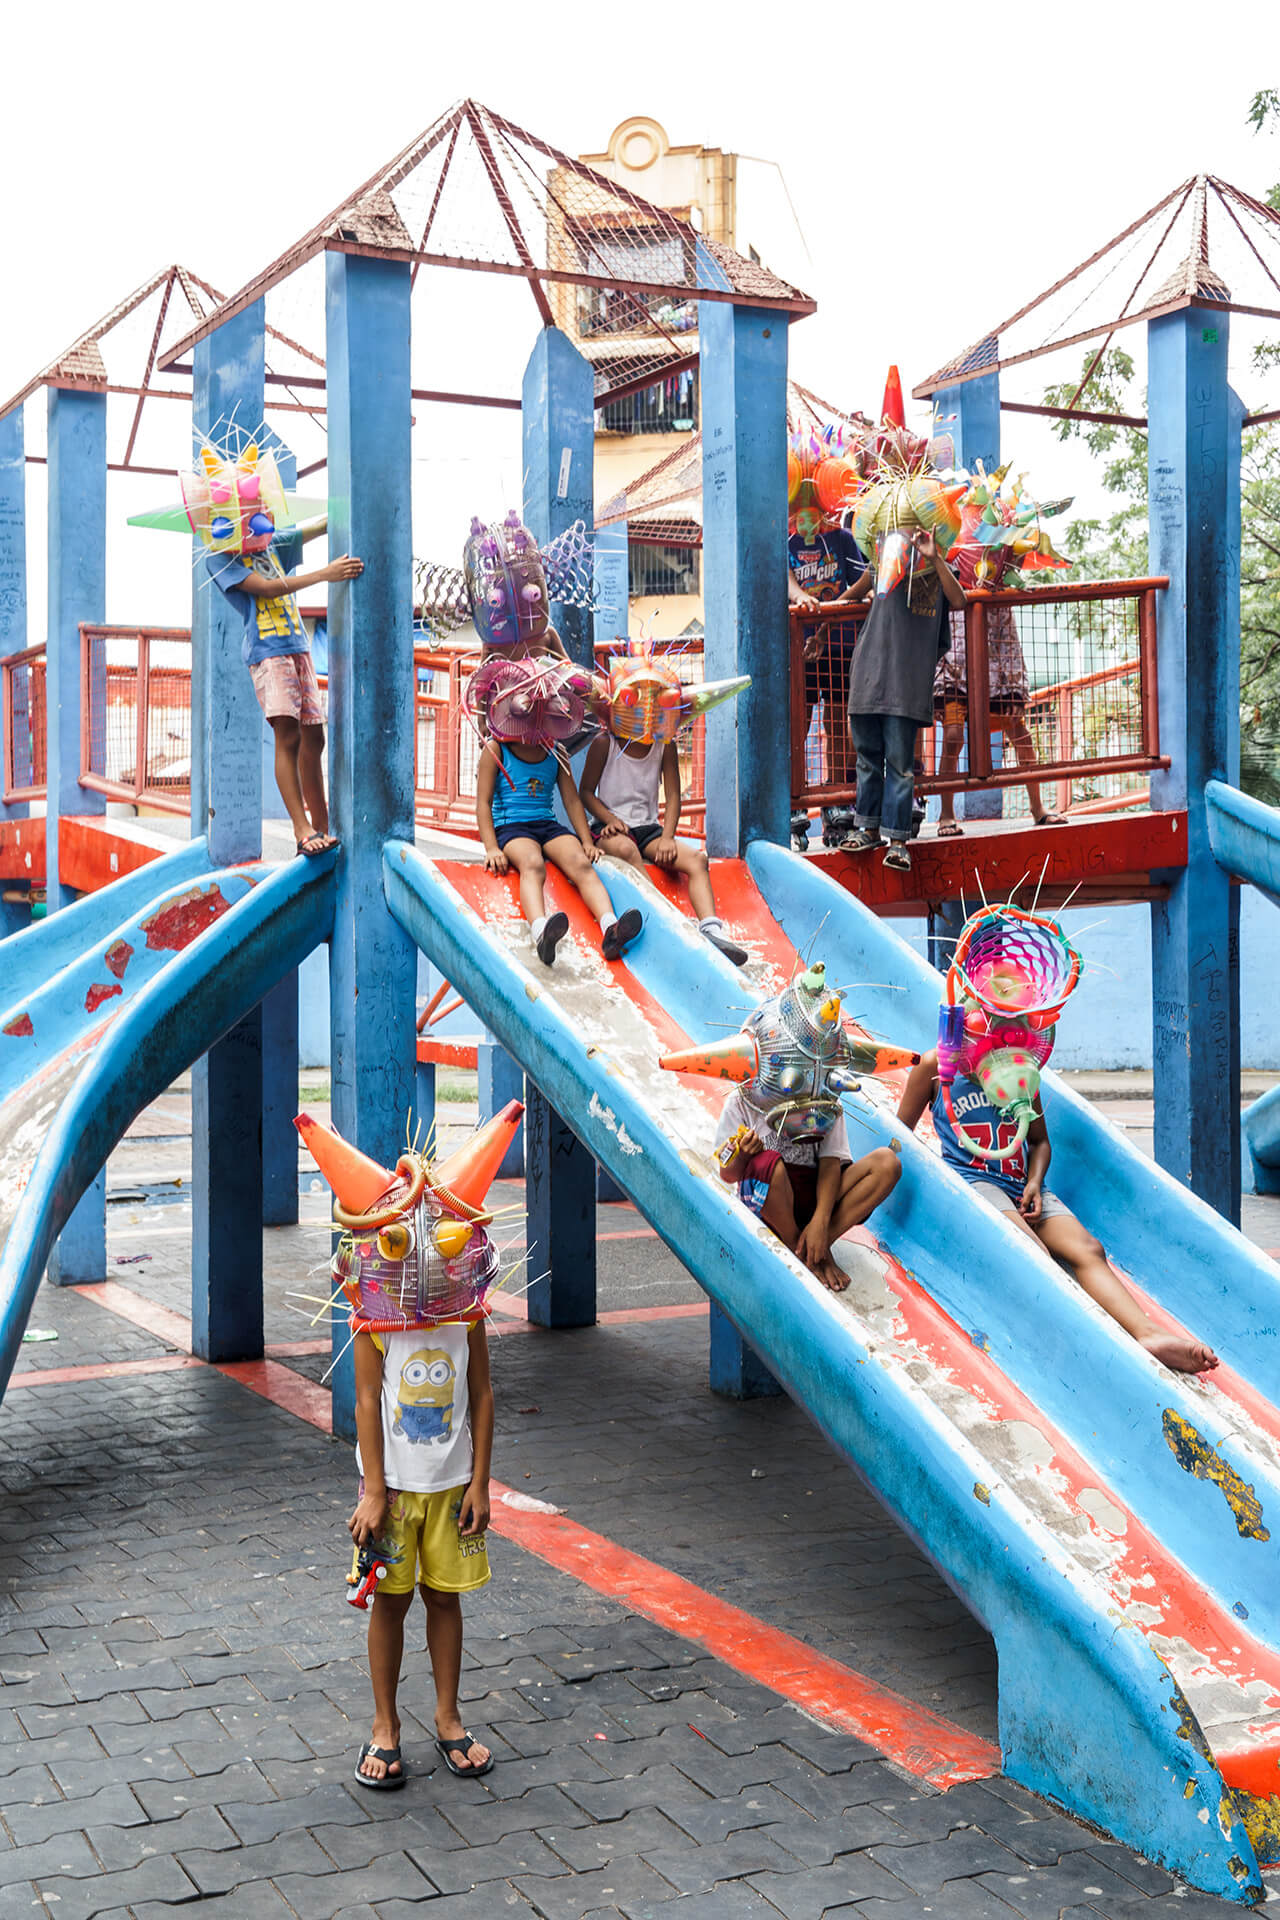 Art Installations in public spaces - By the slide / play park (Aliens of Manila series)